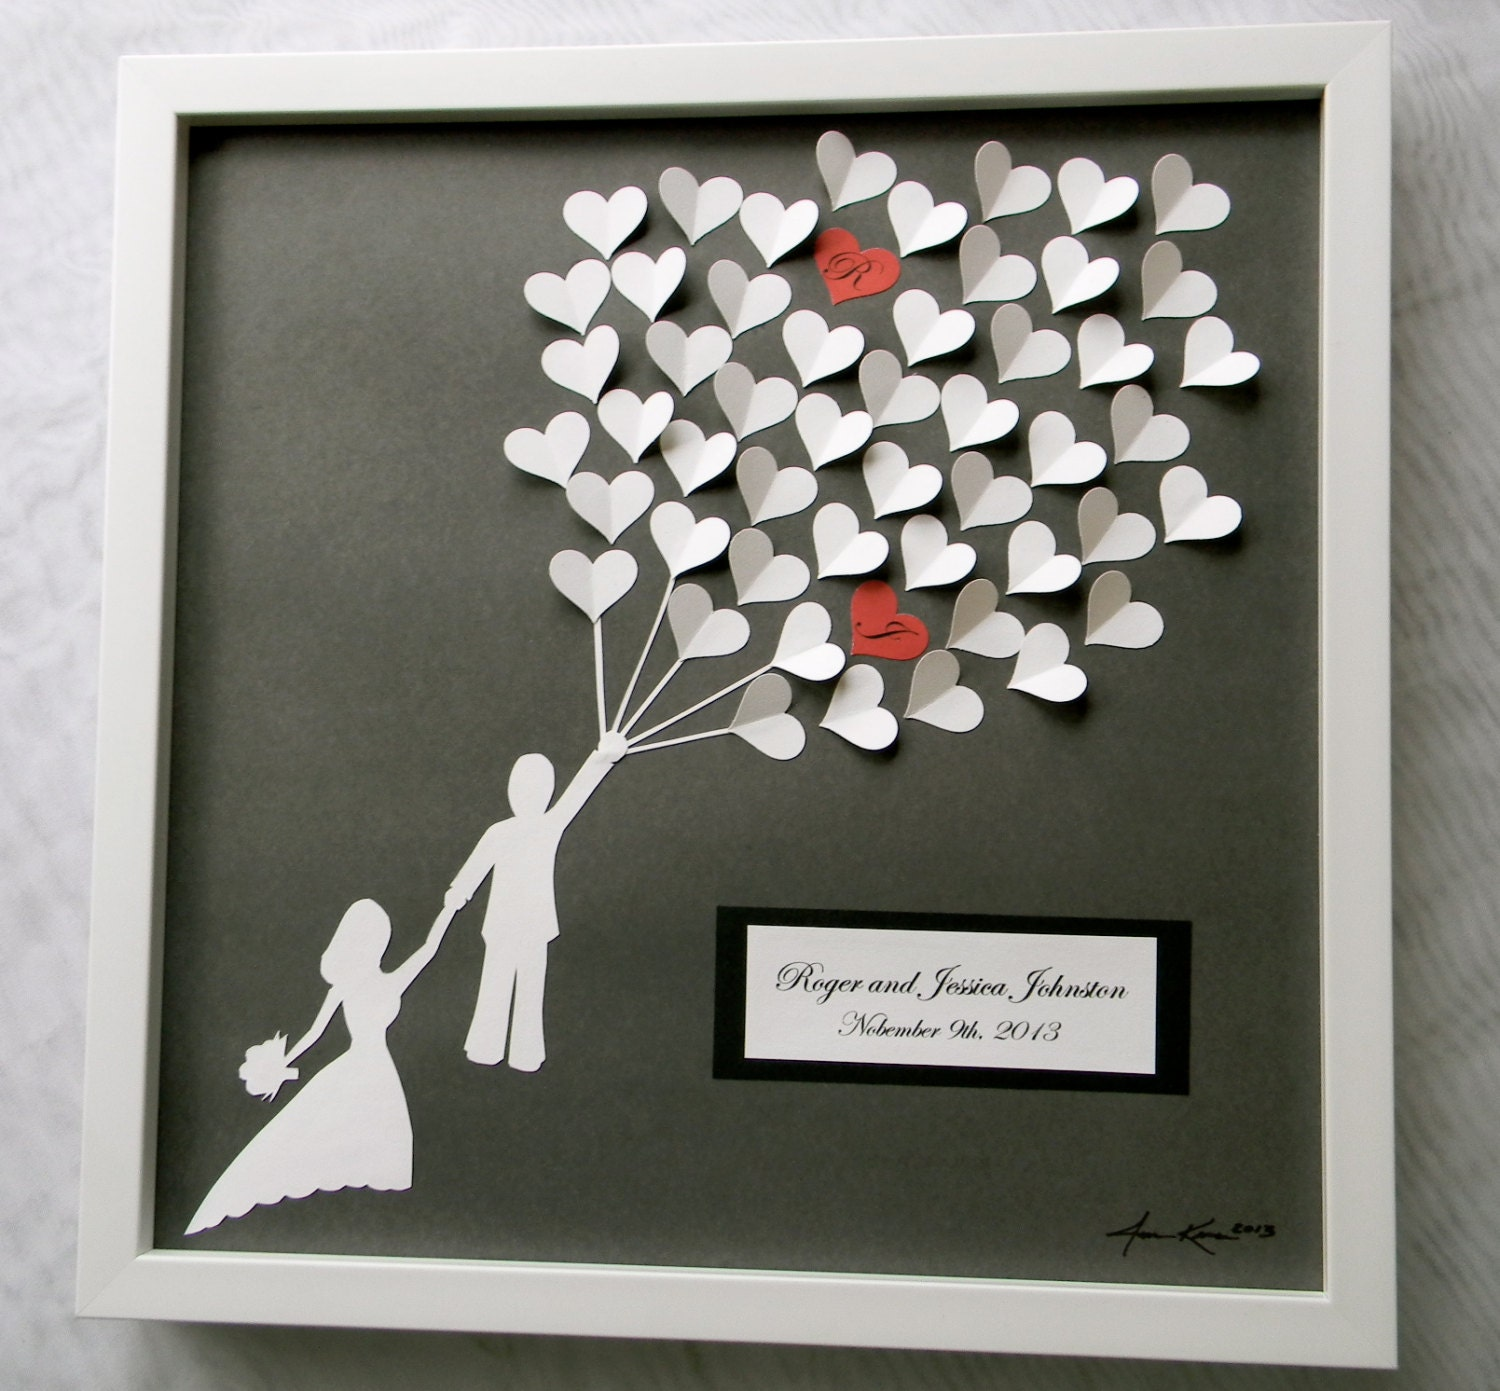 Alternative Wedding Guest Book Ideas: Wedding Guest Book Alternative 3D Paper Hearts Lovely Bridal